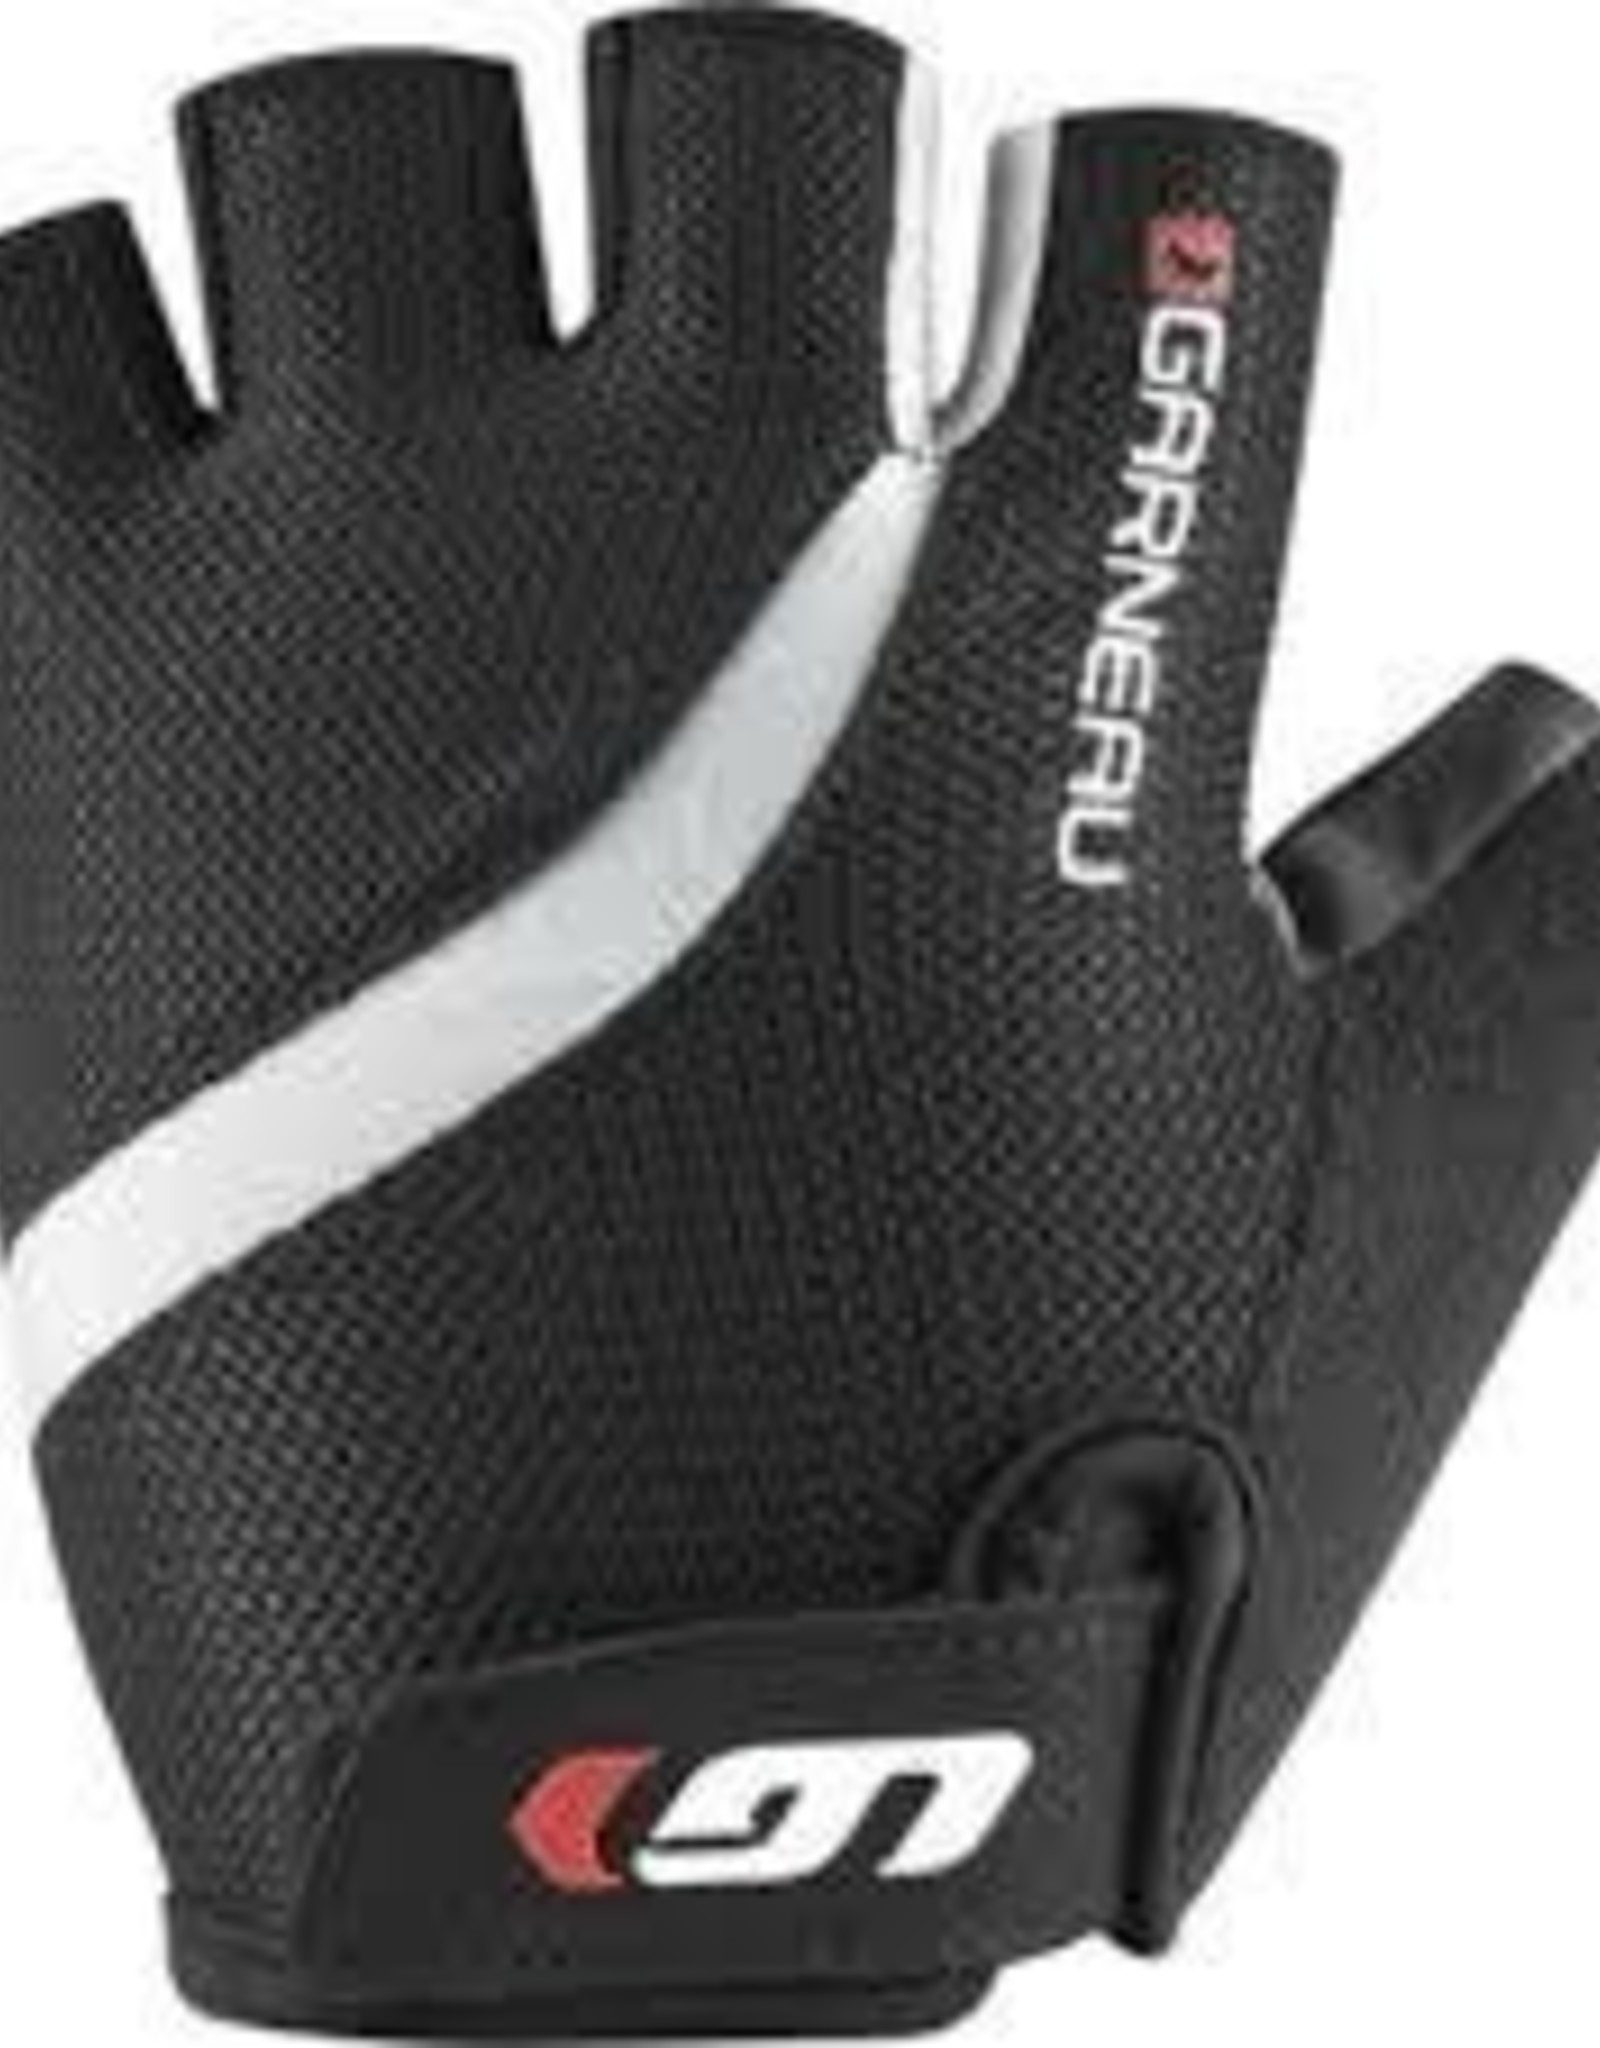 Louis Garneau Louis Garneau Biogel Rx-V Women's Glove: Black MD